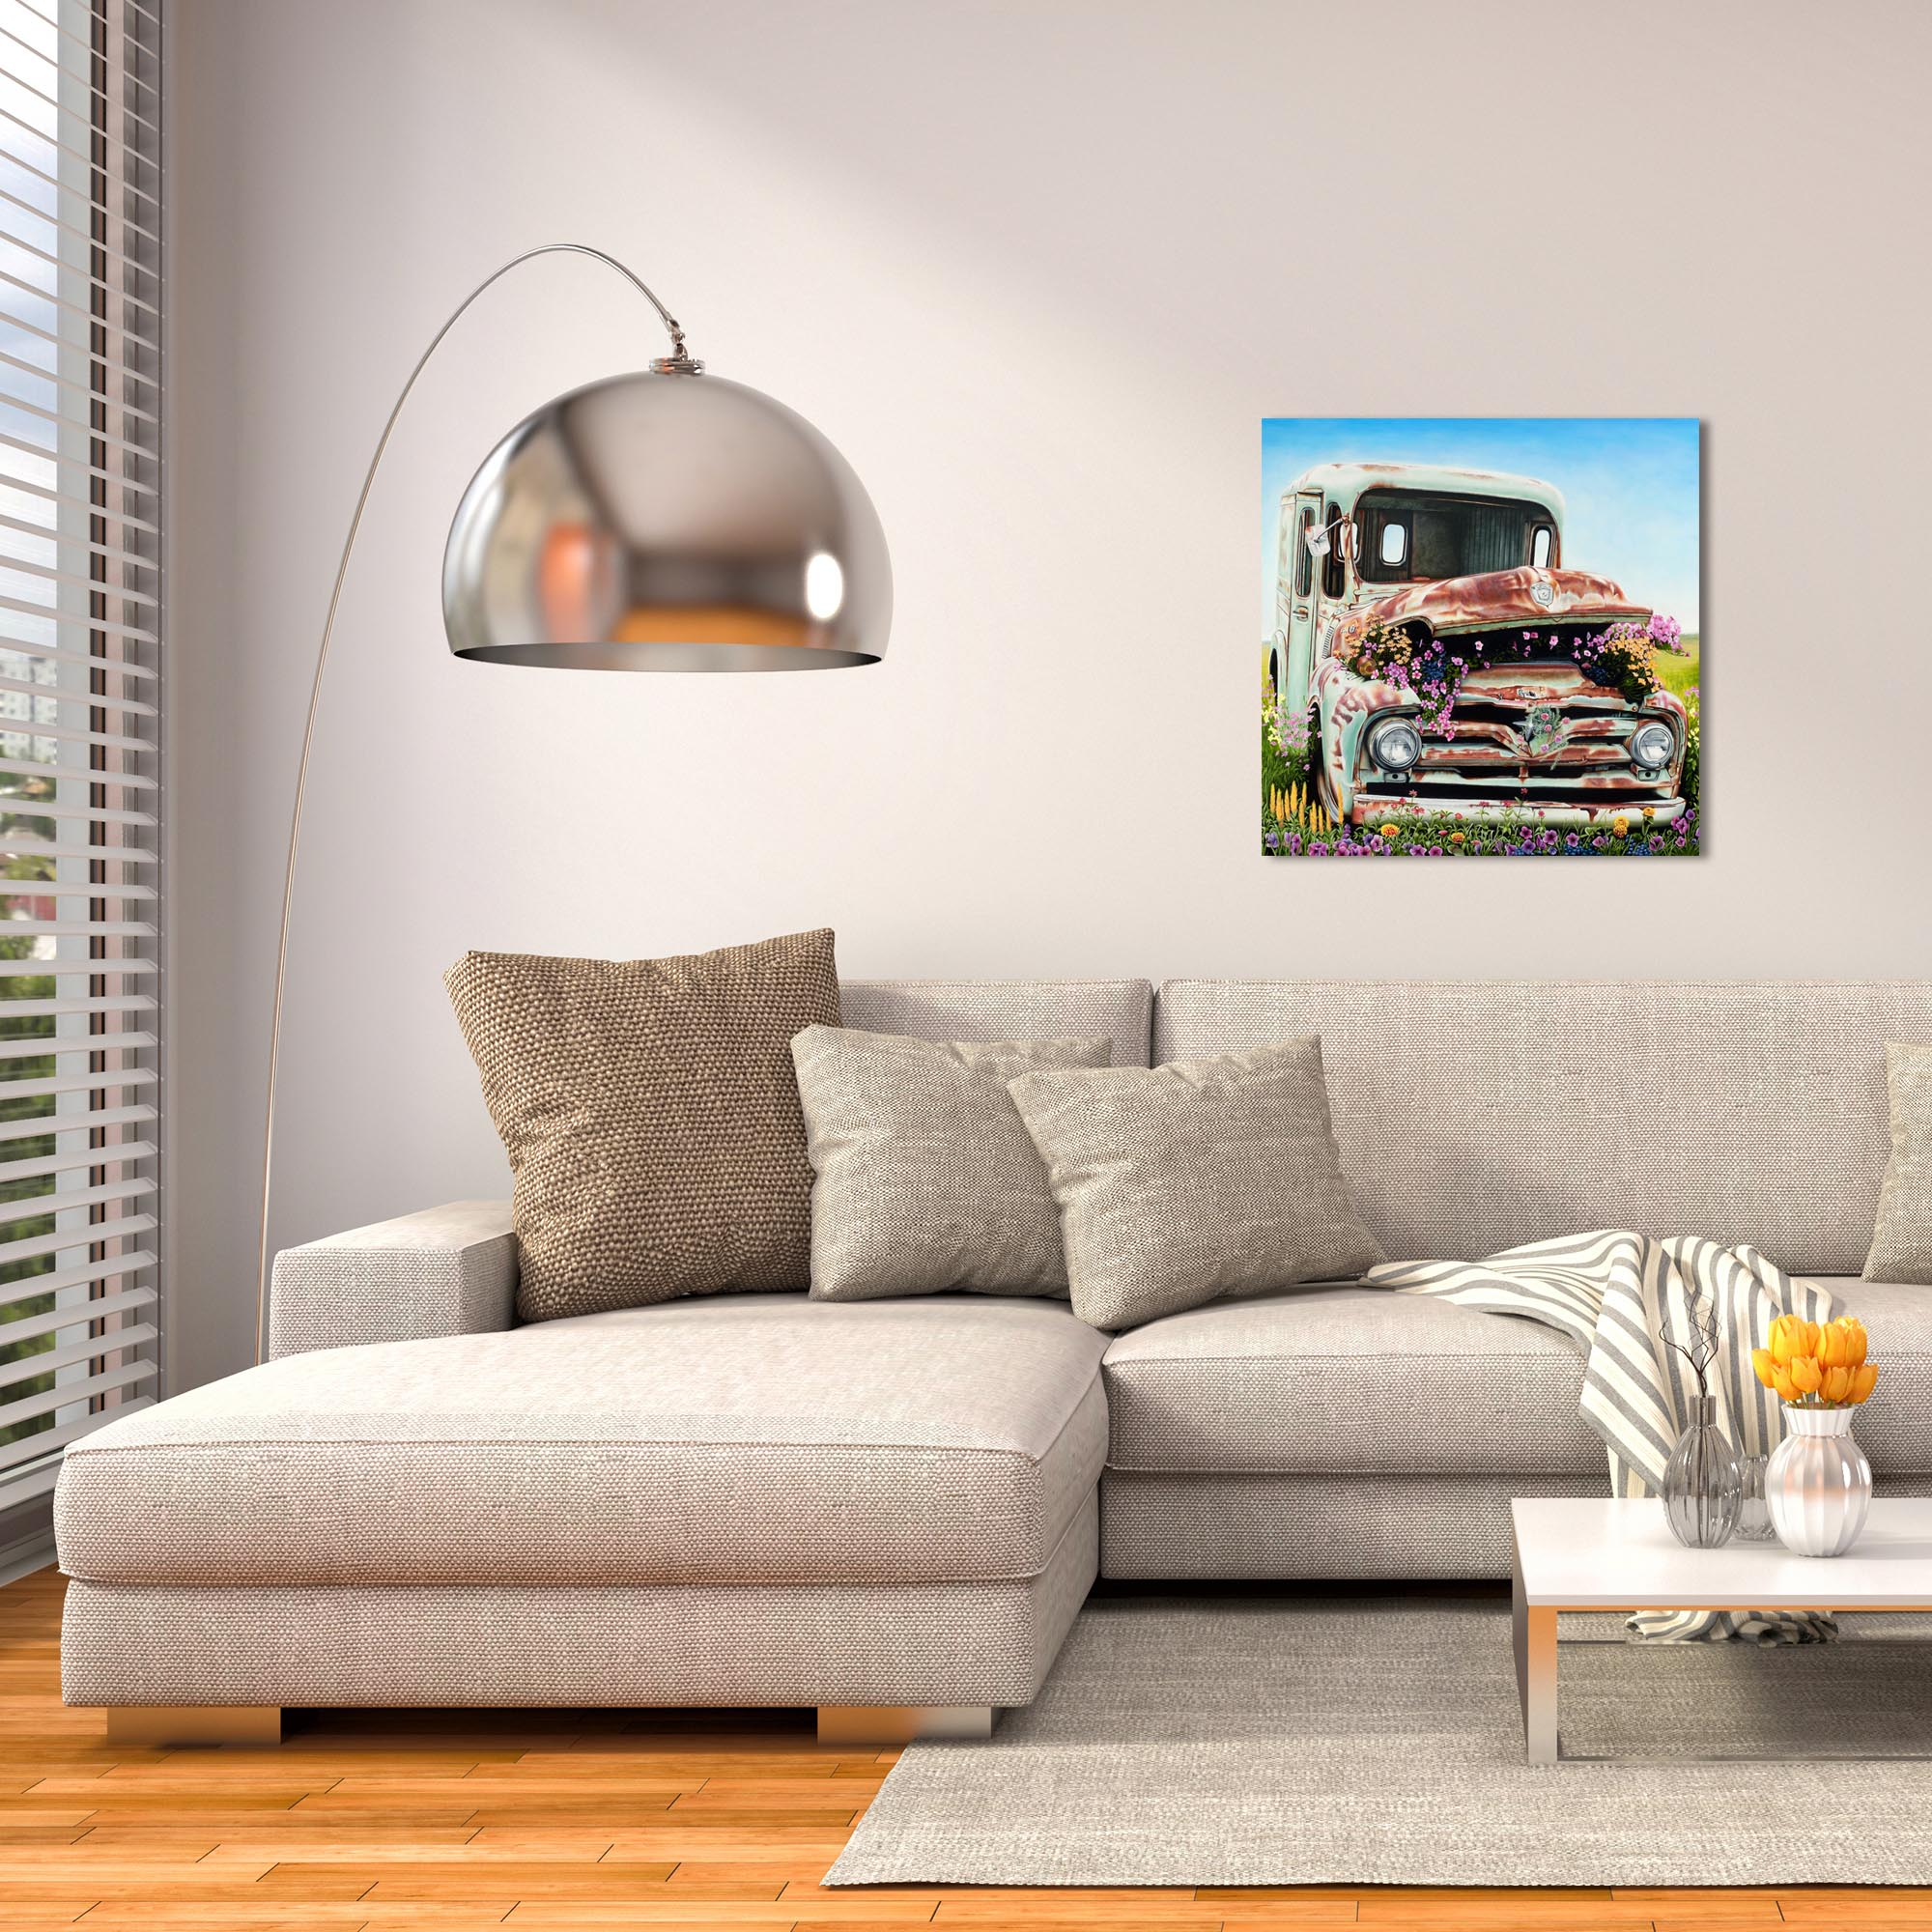 Americana Wall Art 'Got Flowers' - Classic Cars Decor on Metal or Plexiglass - Lifestyle View